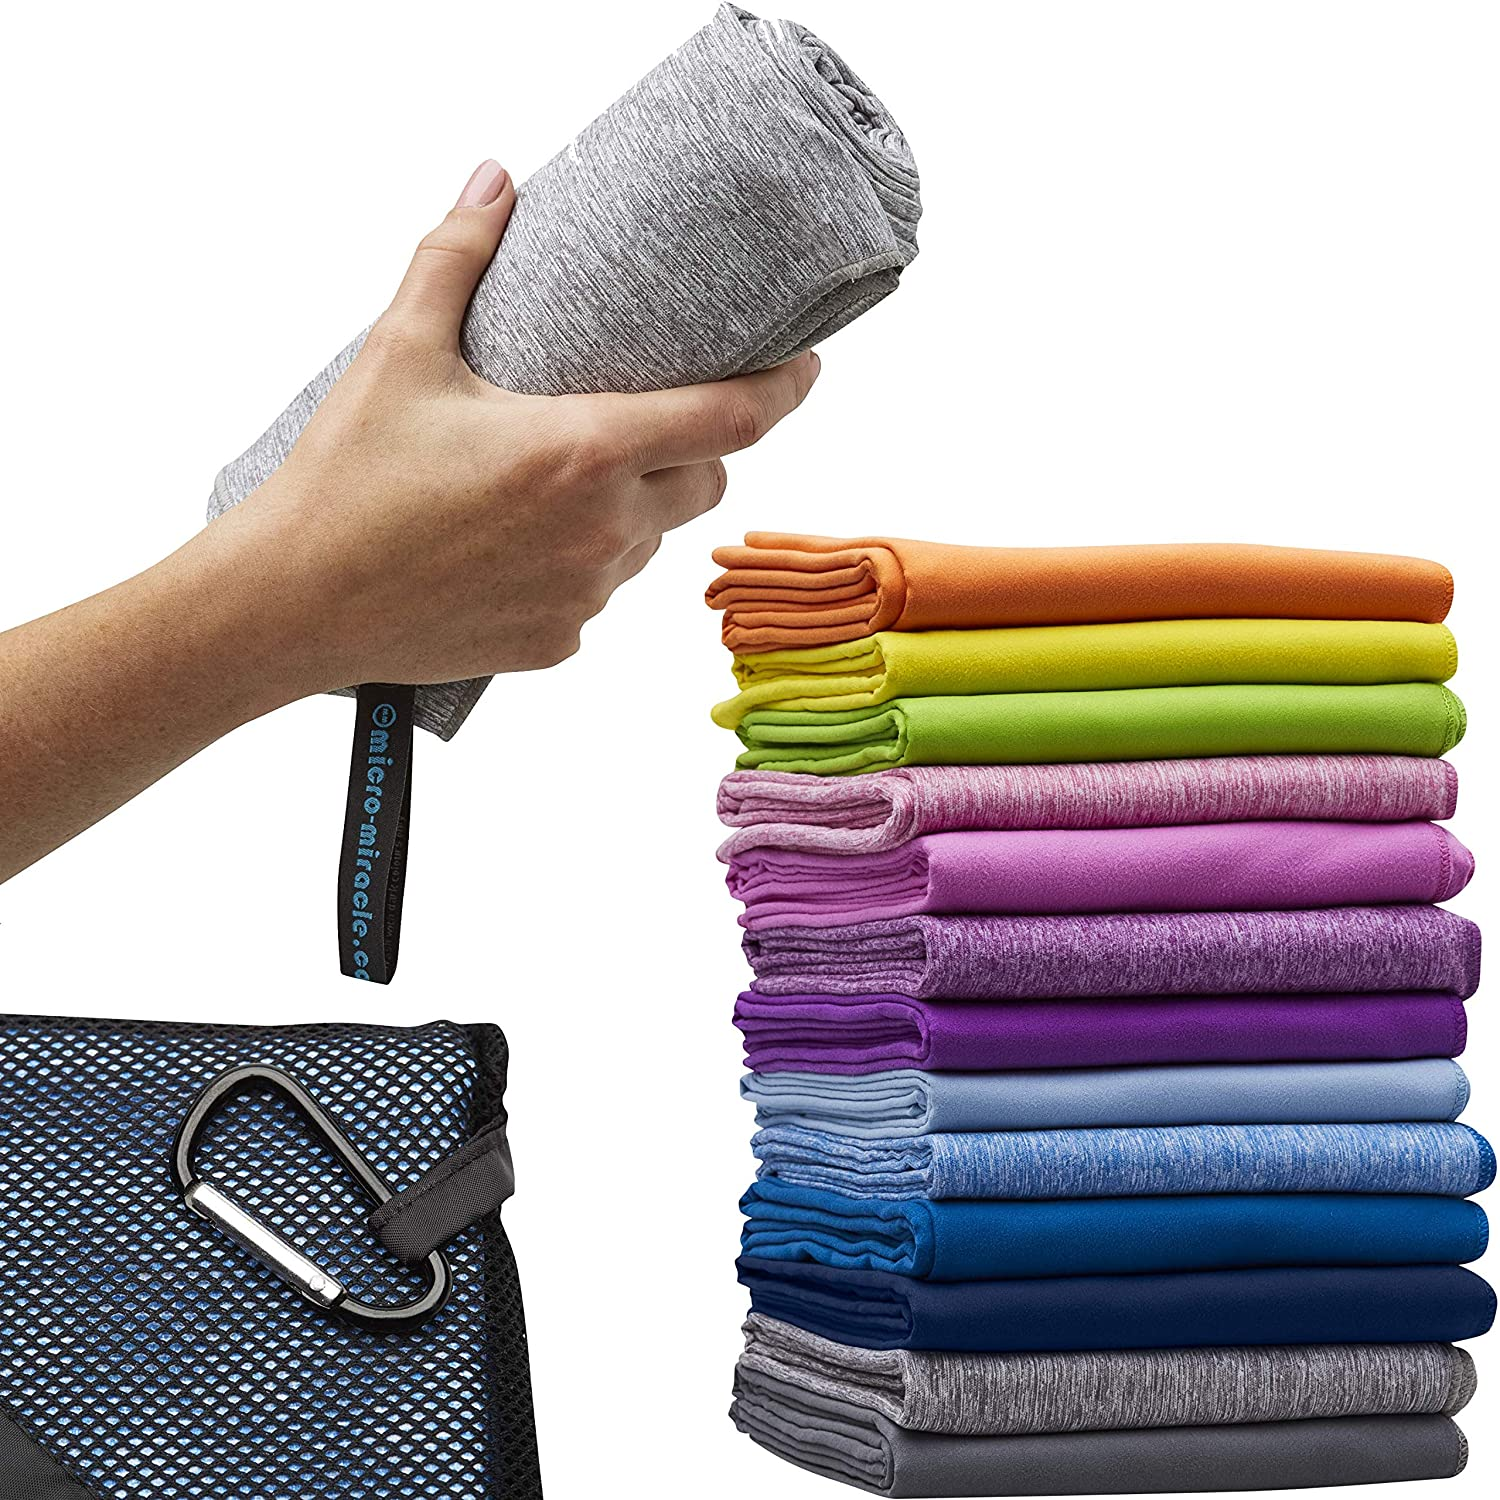 Grey Marle Microfiber Travel Towel XL 30x60  with FREE Hand Towel  Fast Drying, Compact, Soft, Light, Antibacterial. For Backpacking, Camping, Beach, Gym, Swimming. Gift Box and Carry Bag.